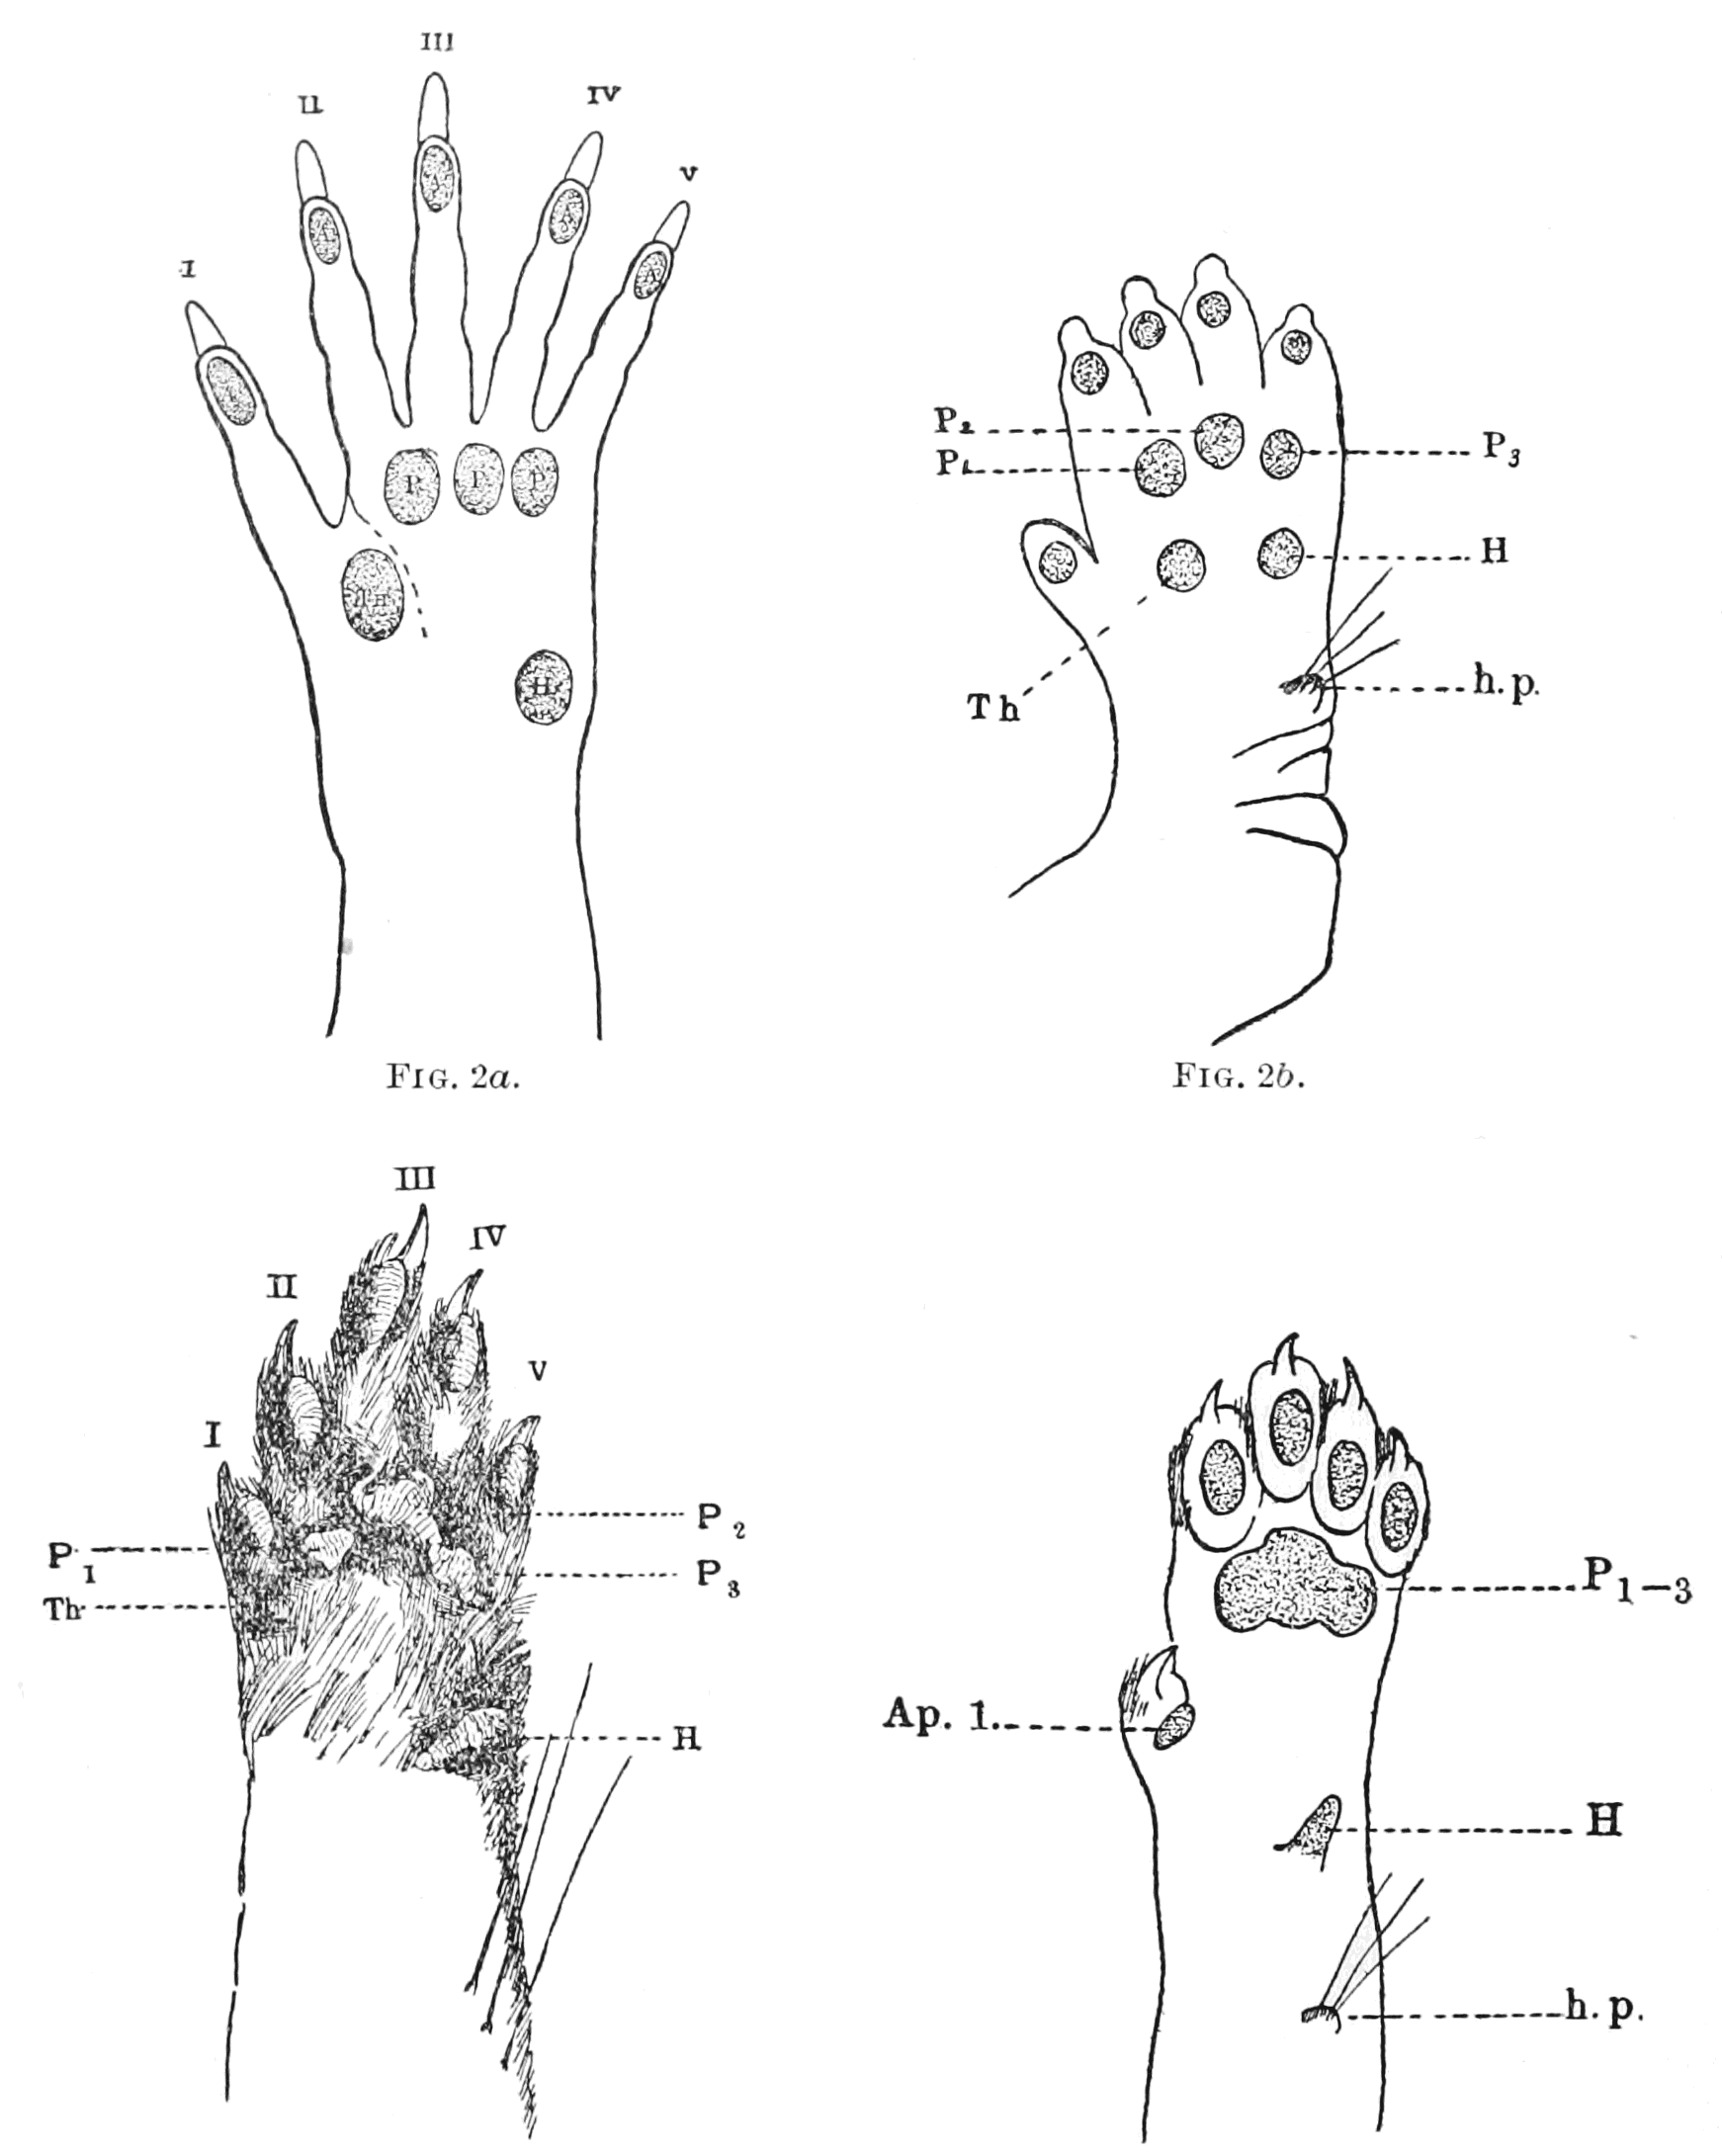 PSM V62 D050 Arrangement of pads on a mammalian foot.png